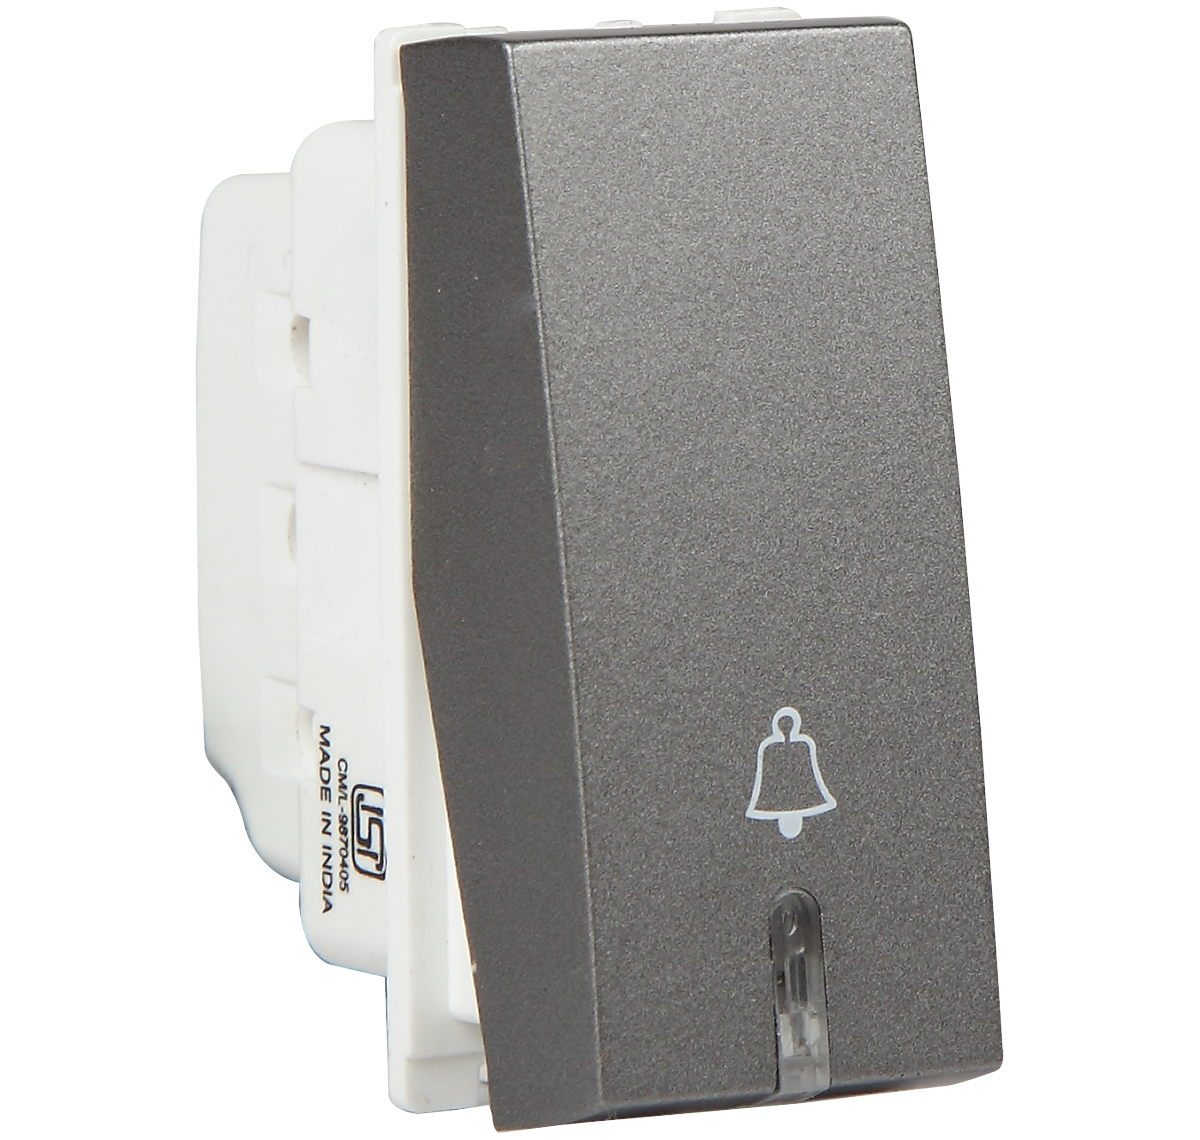 10 A Bell Push With Ind. switch